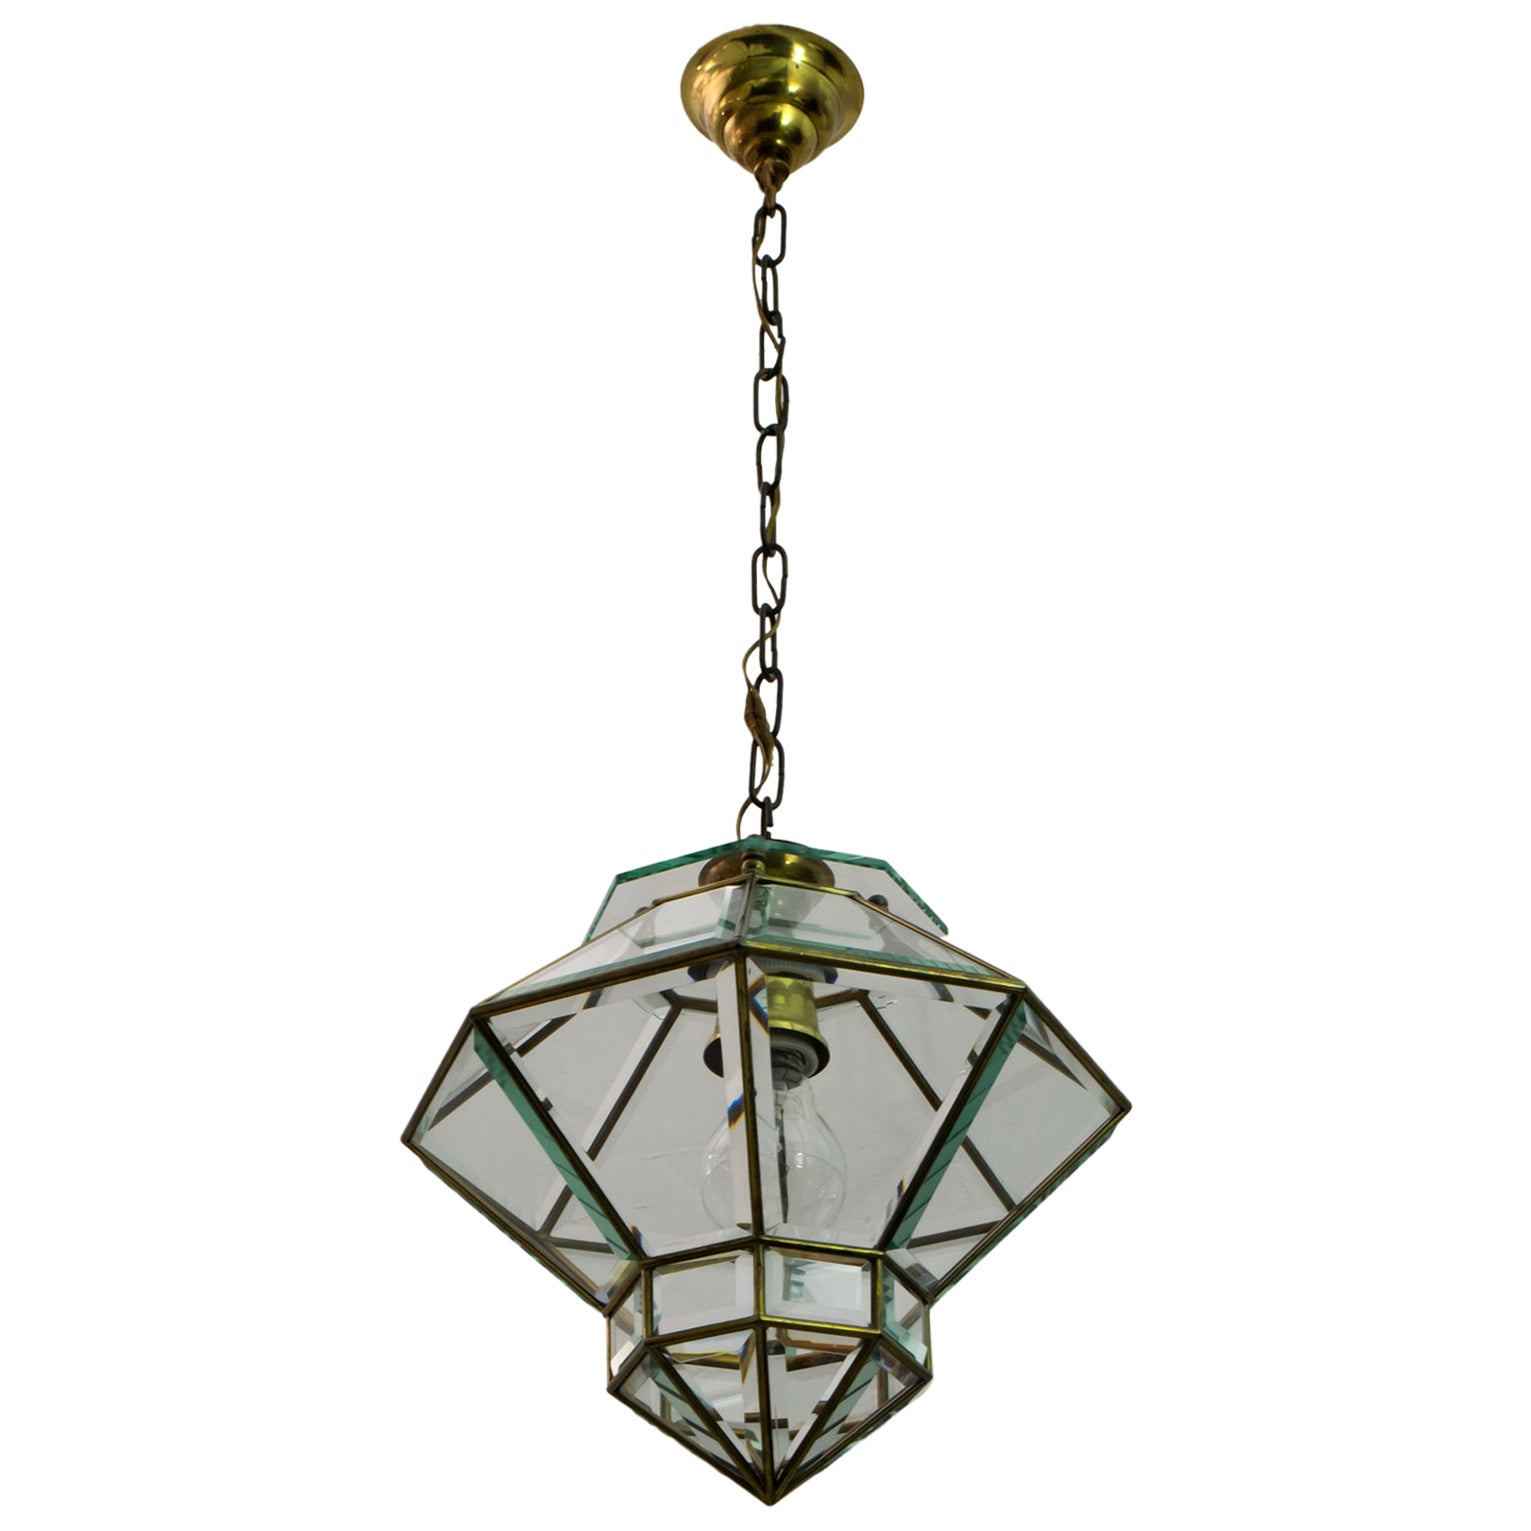 Adolf Loos Art Nouveau Brass and Beveled Glass Pendant Light for Knize, 1905